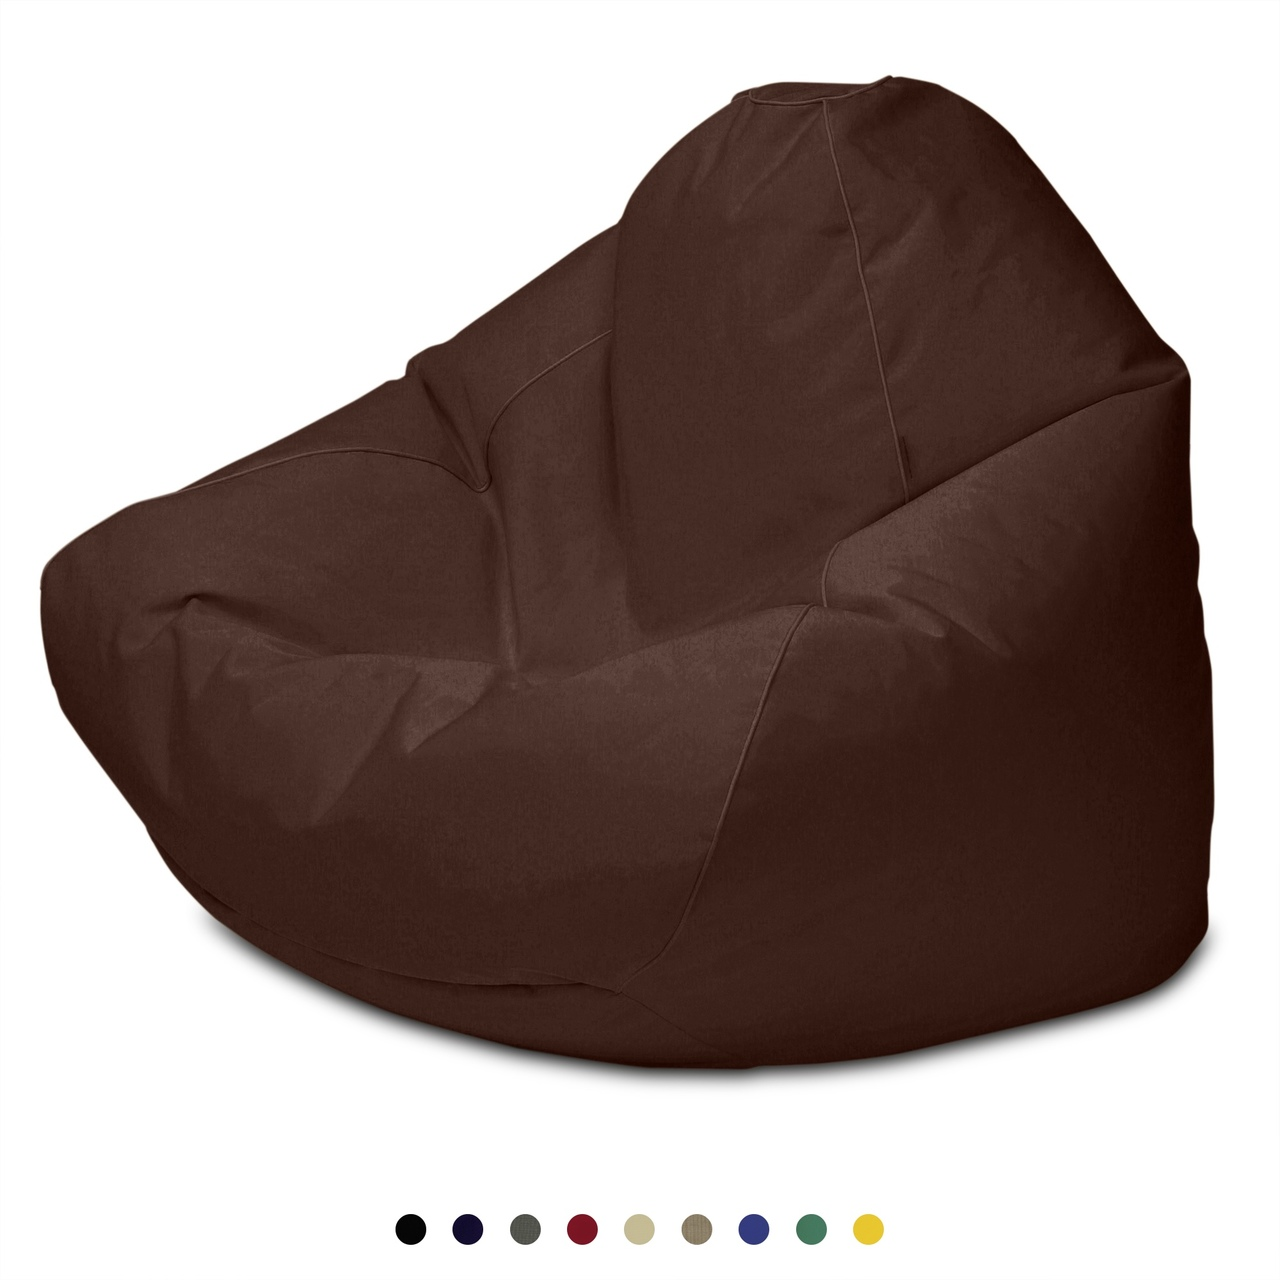 Sunbrella Outdoor Queen Size Bean Bag in brown